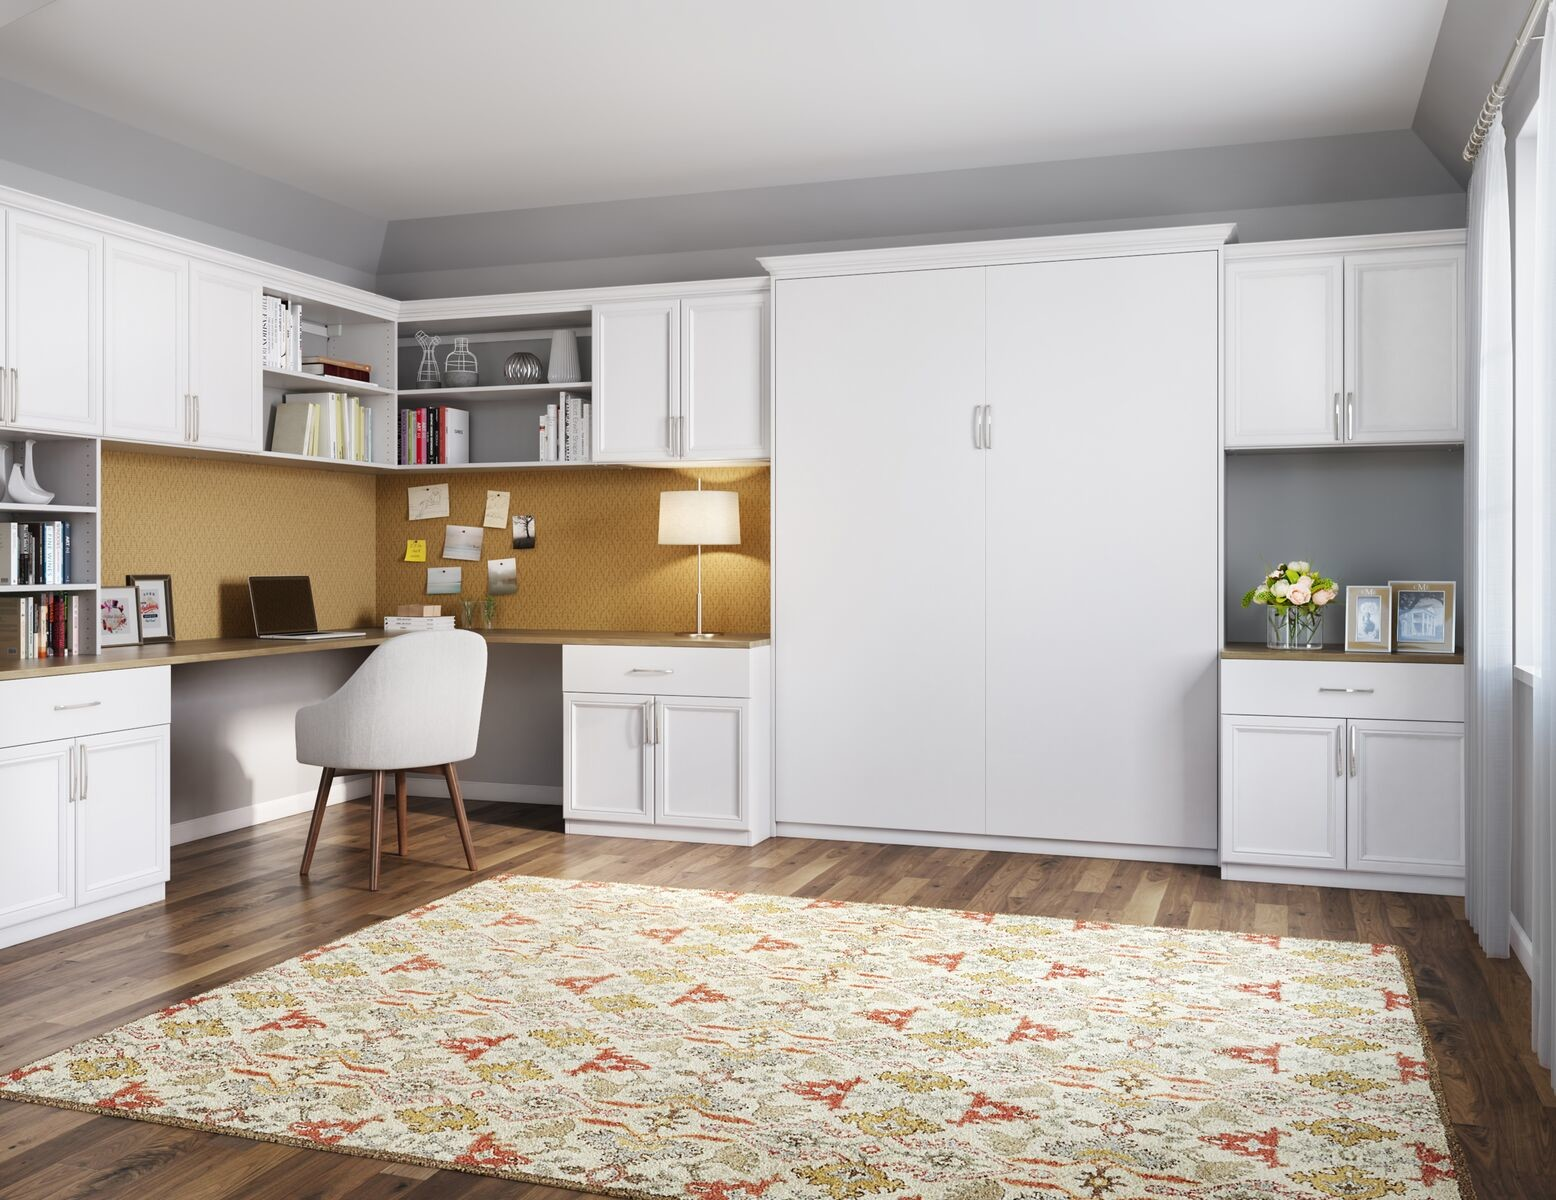 California Closets Stockton - Top 5 Reasons to Invest in a Murphy Bed